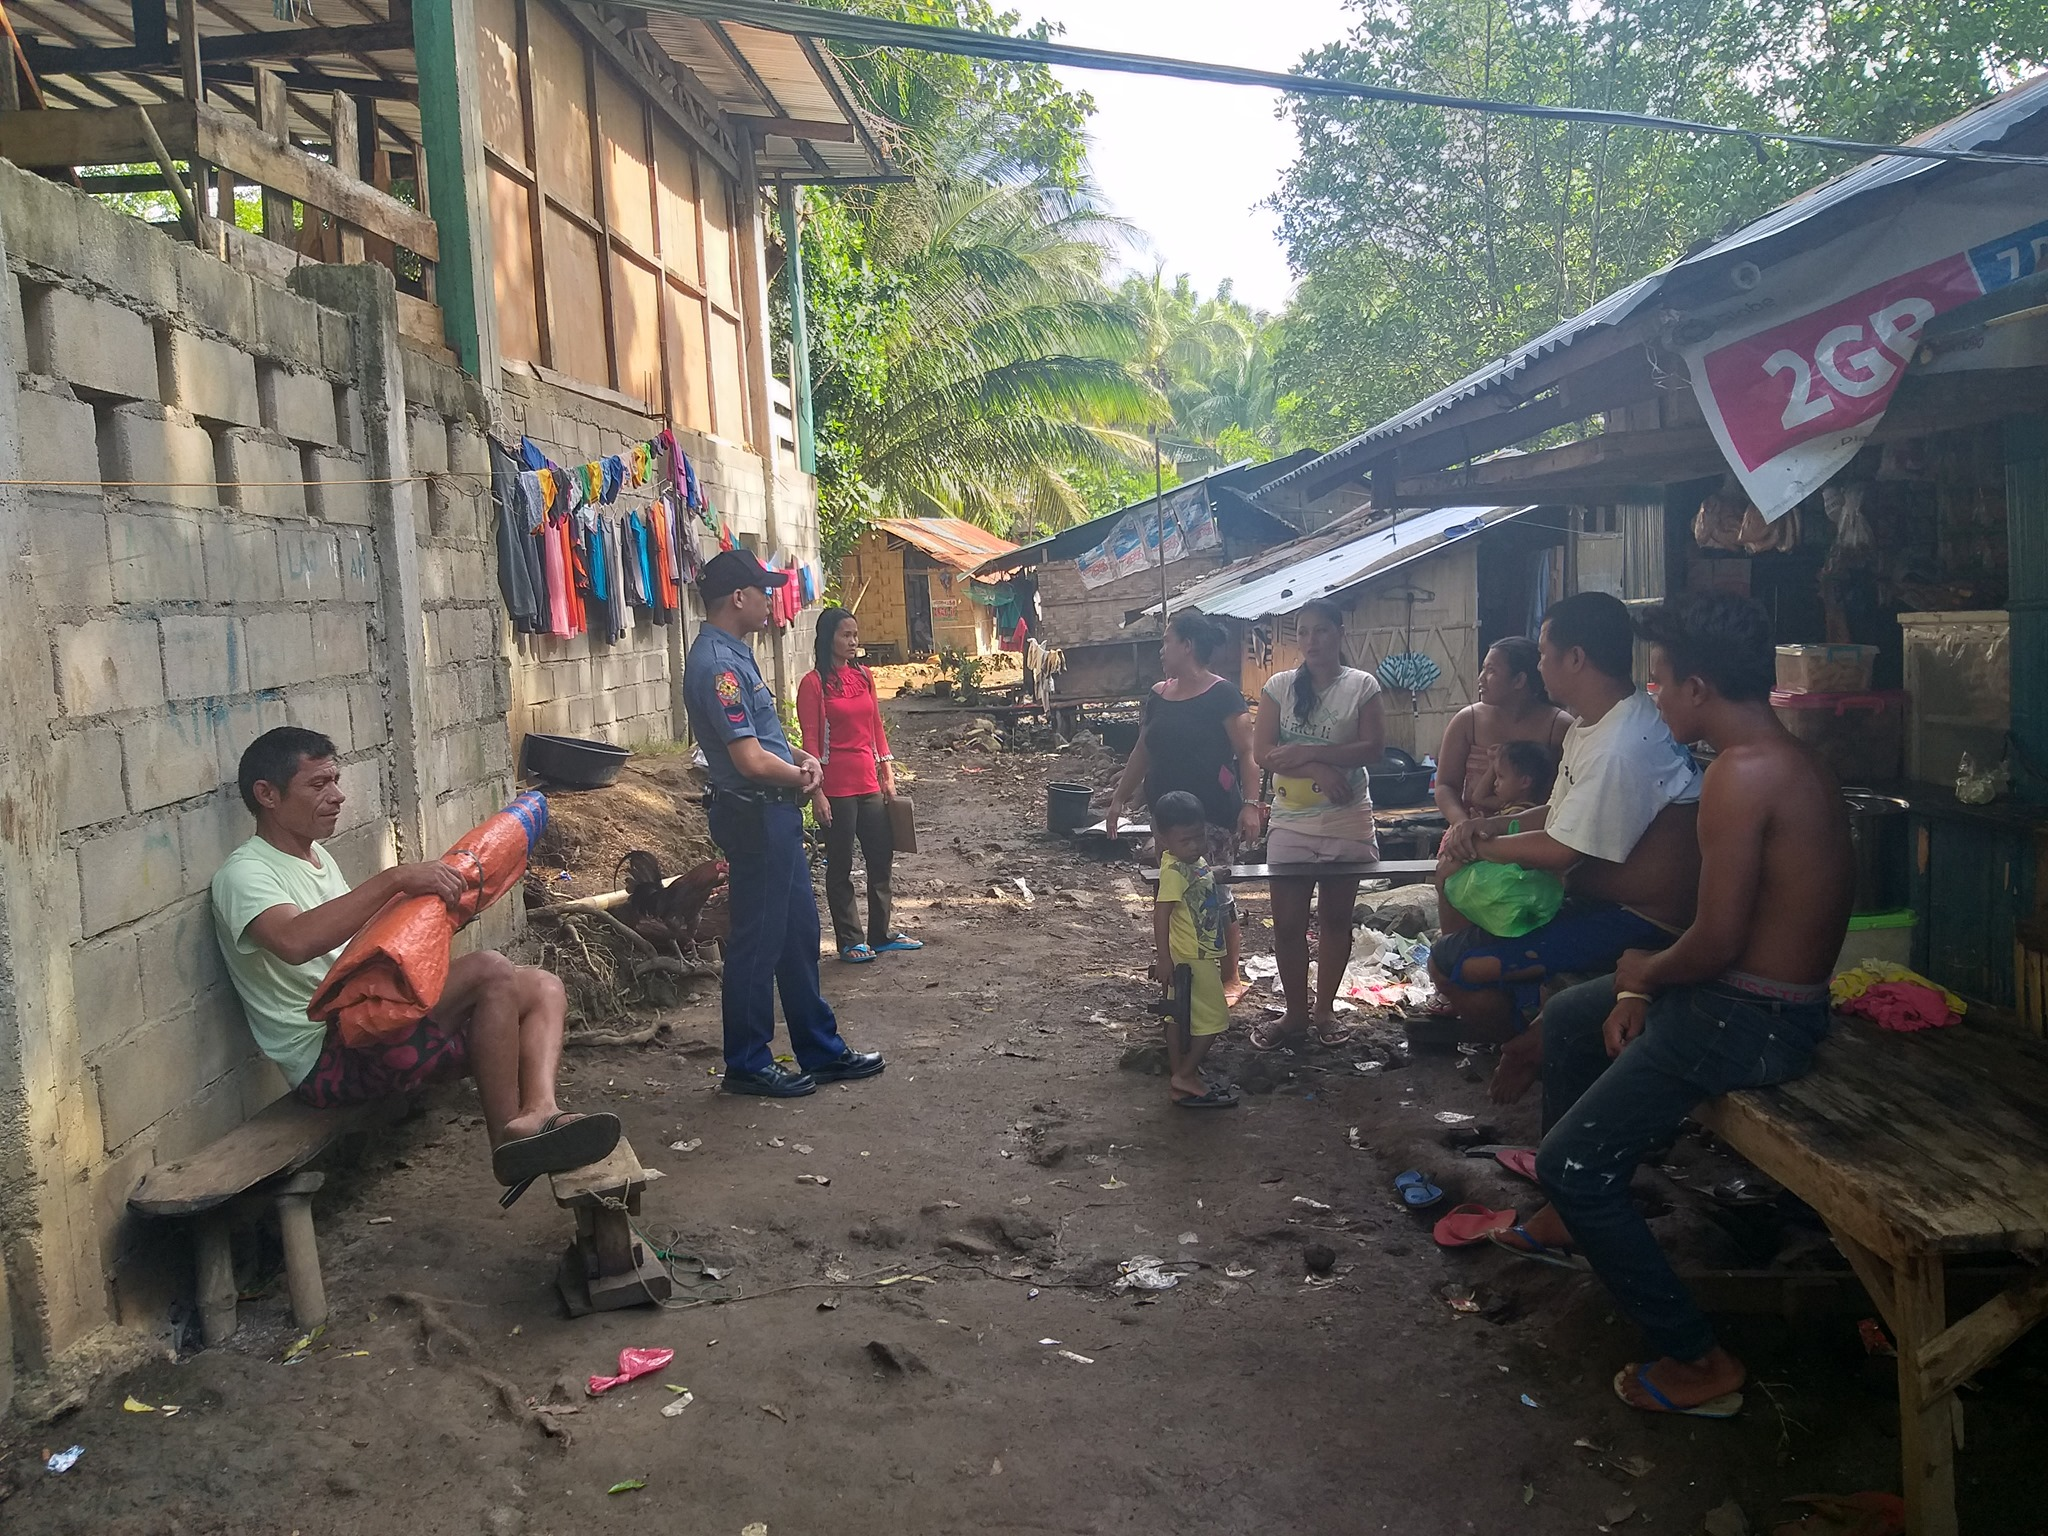 Sarangani Municipal Police Station personnel conduct dialouge on Anti-illegal Drug/Criminality campaign, terrorism awareness and crime prevention tips to the residents of Brgy Mabila, Sarangani Davao Occidental